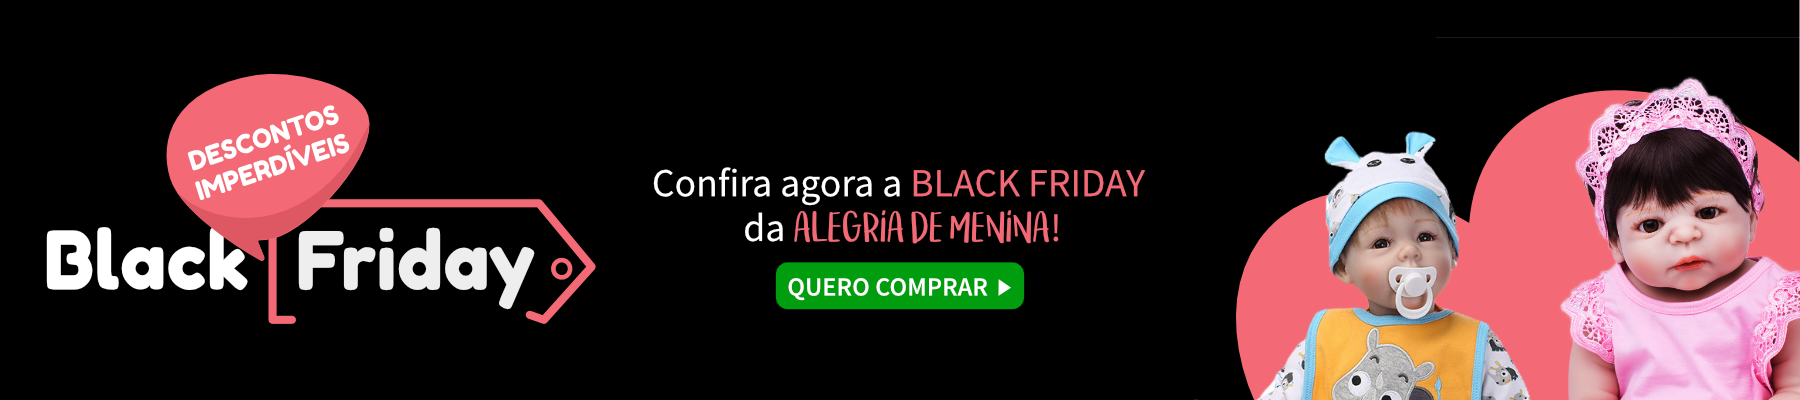 Black Friday - Bonecas Reborn